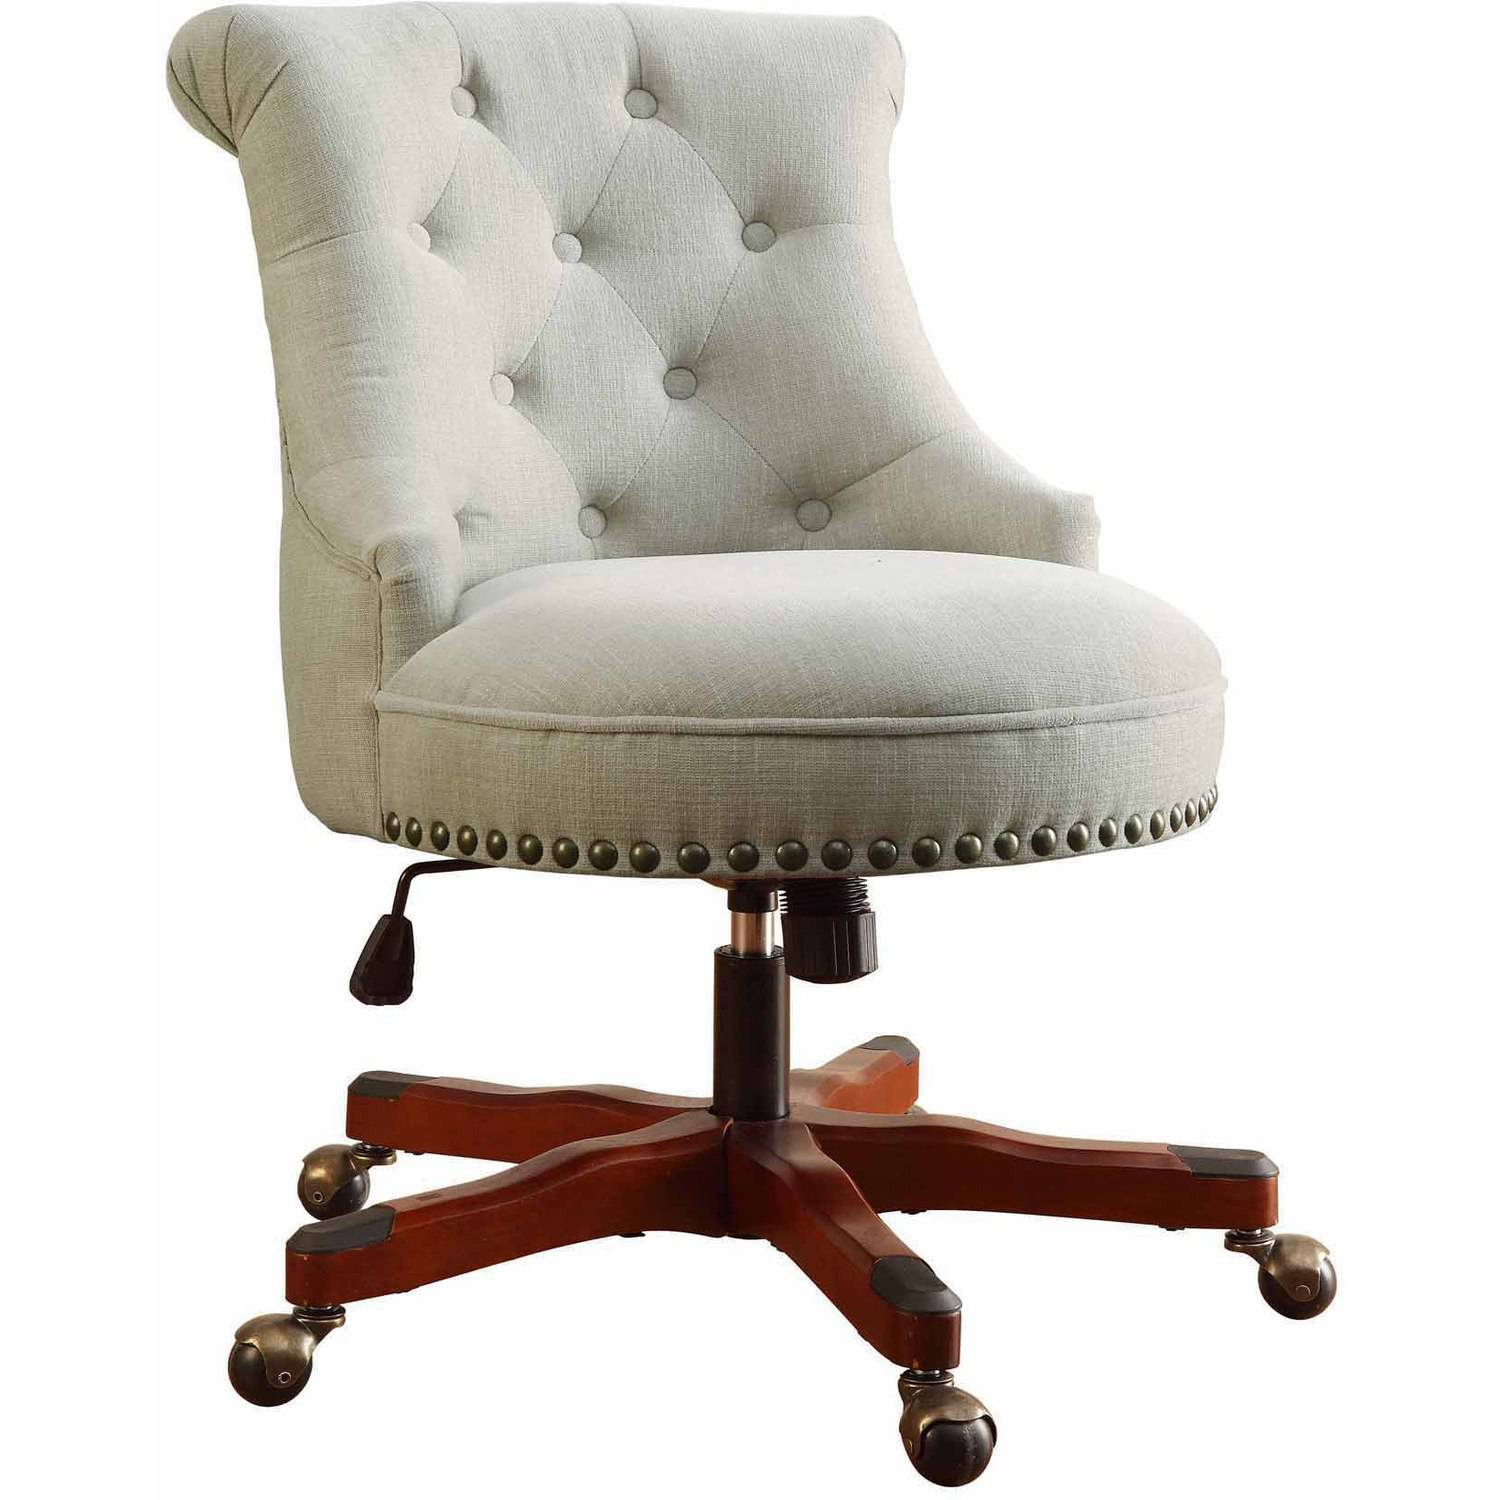 Linon Sinclair fice Chair Multiple Finishes 20 24 inch Seat